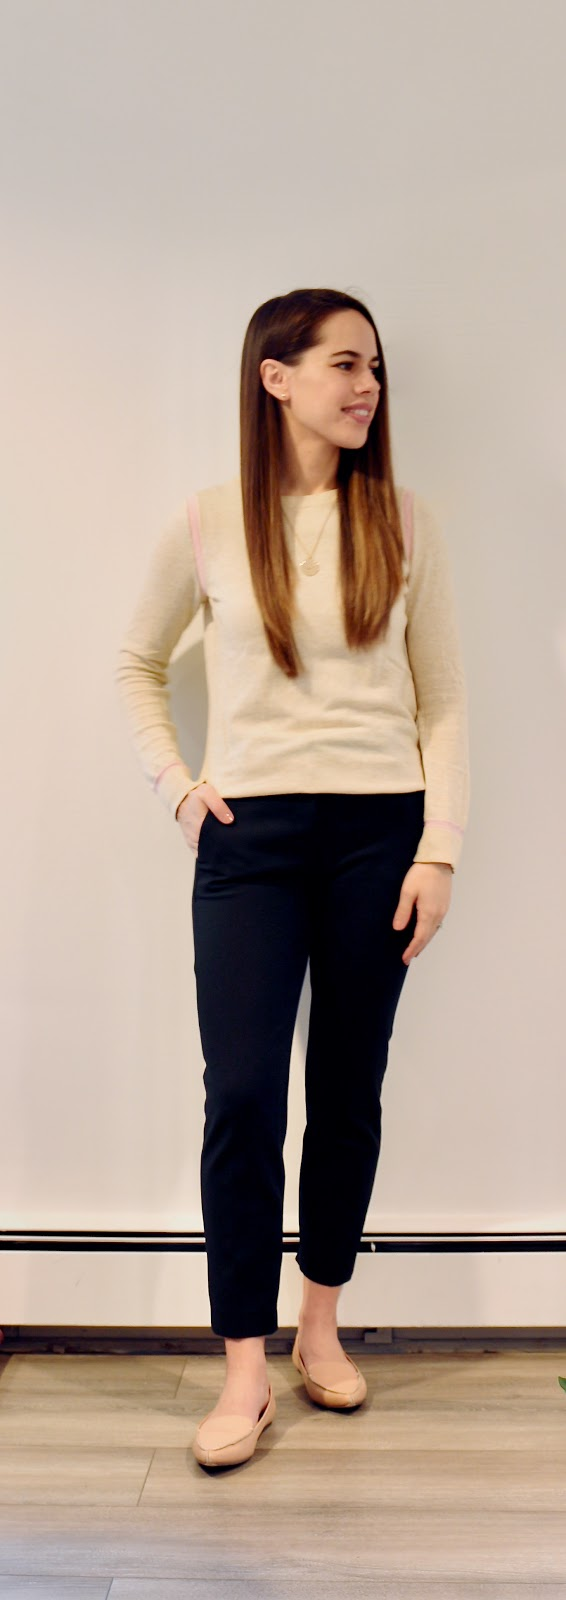 Jules in Flats - Gap Beige Sweater with Pink Accents (Business Casual Winter Workwear on a Budget)